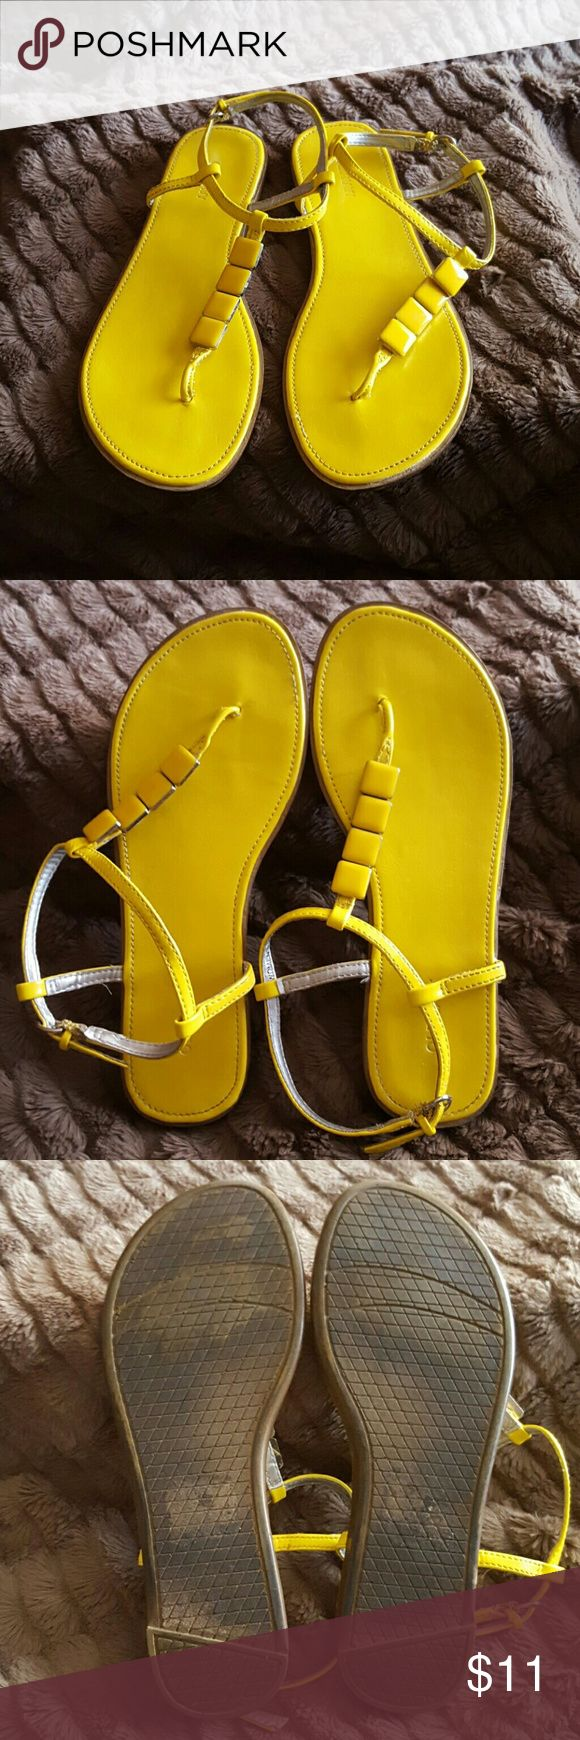 Old Navy Yellow Sandals Pretty Old Navy sunshine yellow sandals. Have cute little square gems on them. Gently used, only used a couple times. Size 6. Old Navy Shoes Sandals